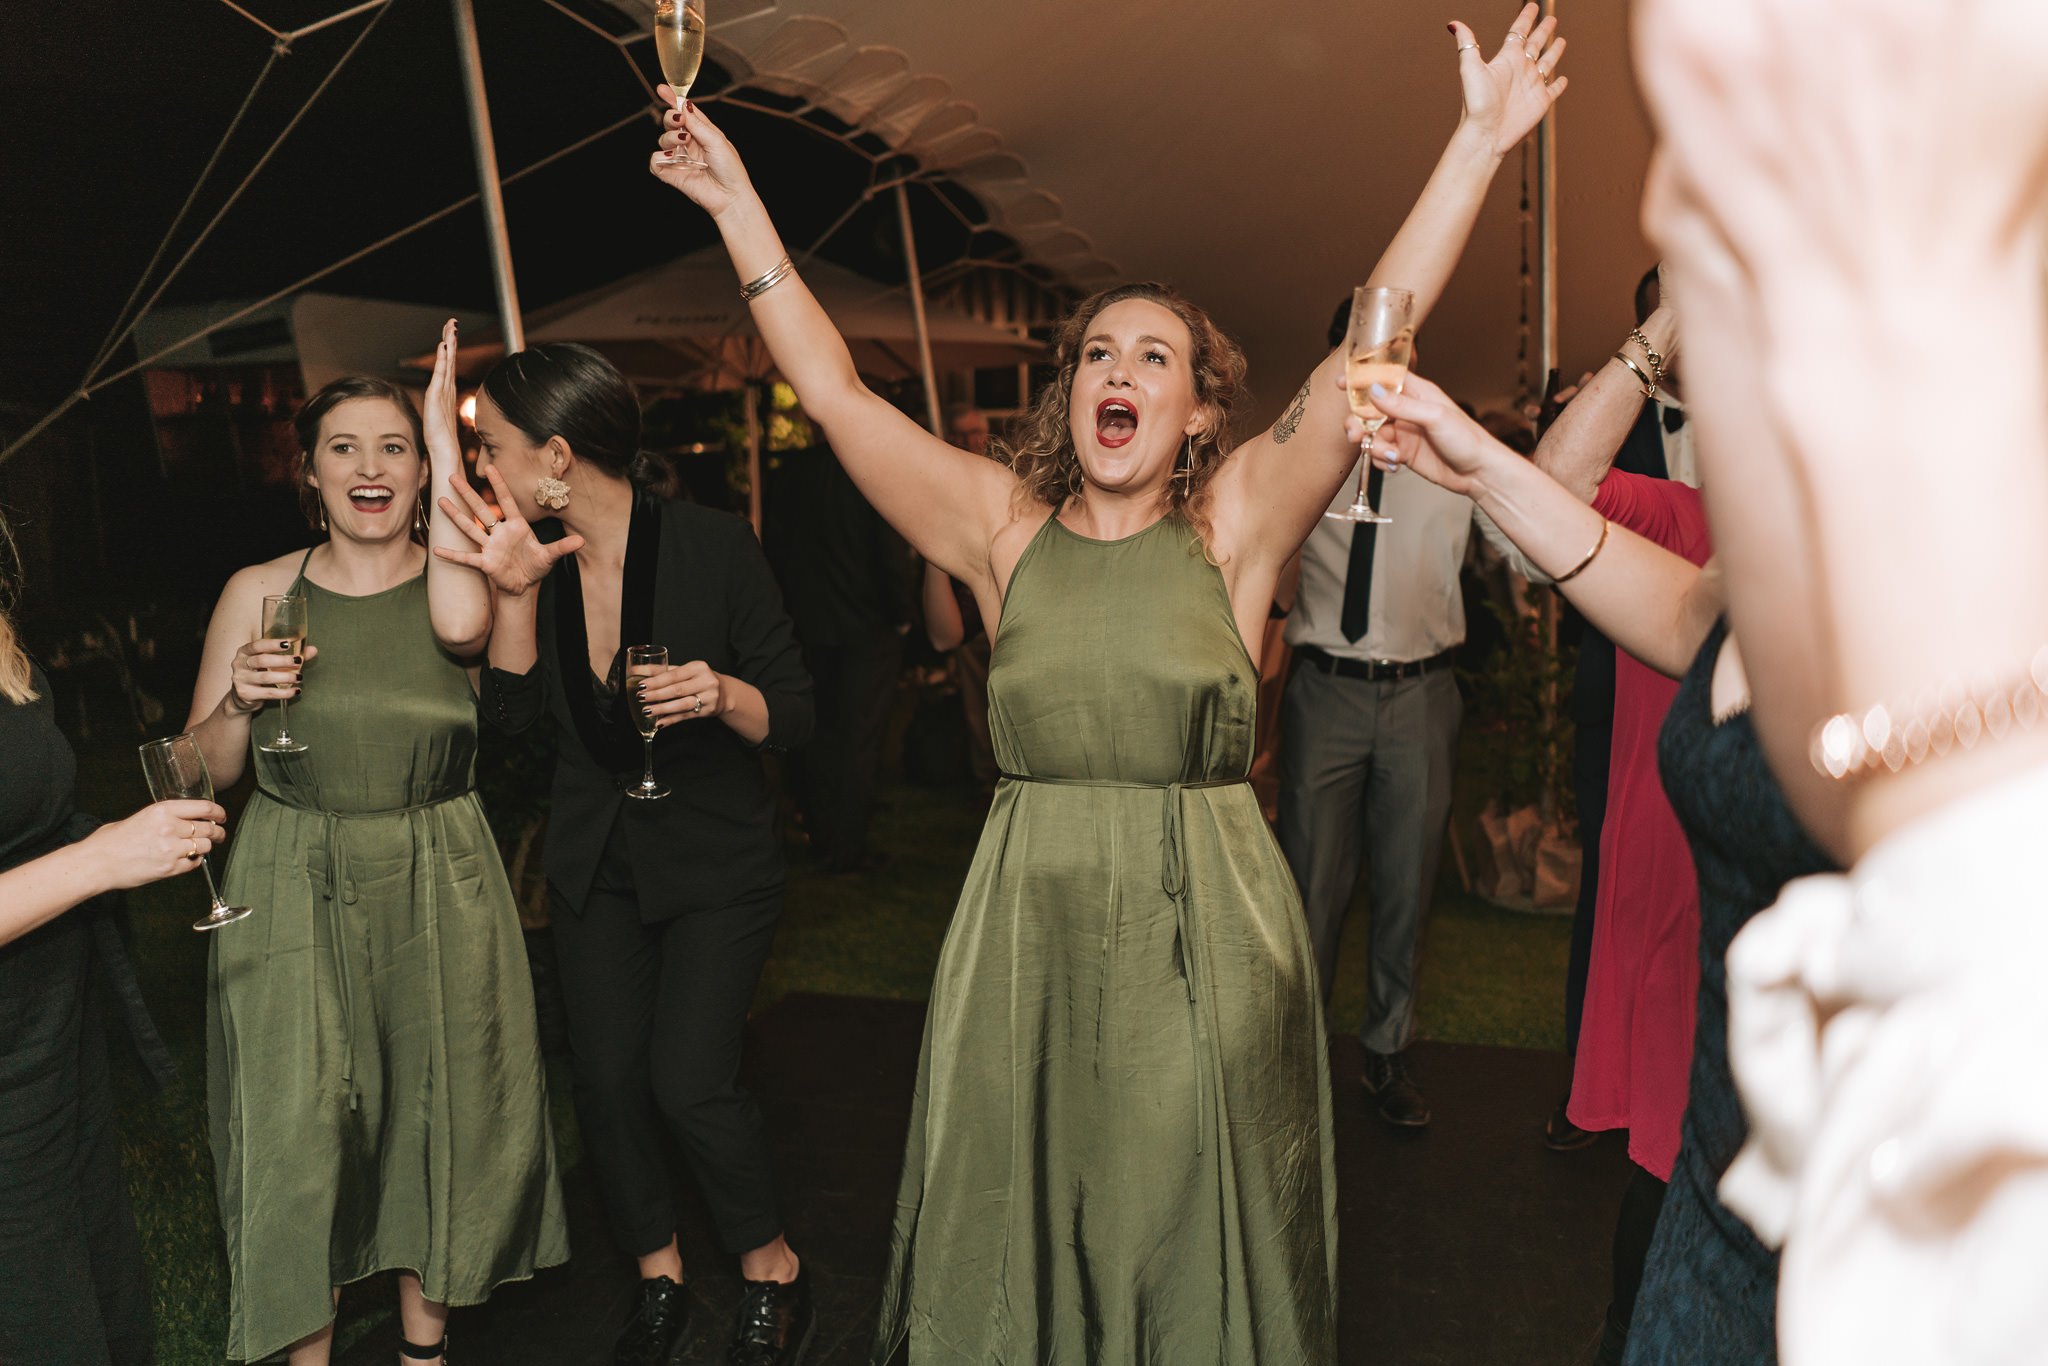 newfound-s-a-tauranga-new-zealand-wedding-photography-1008